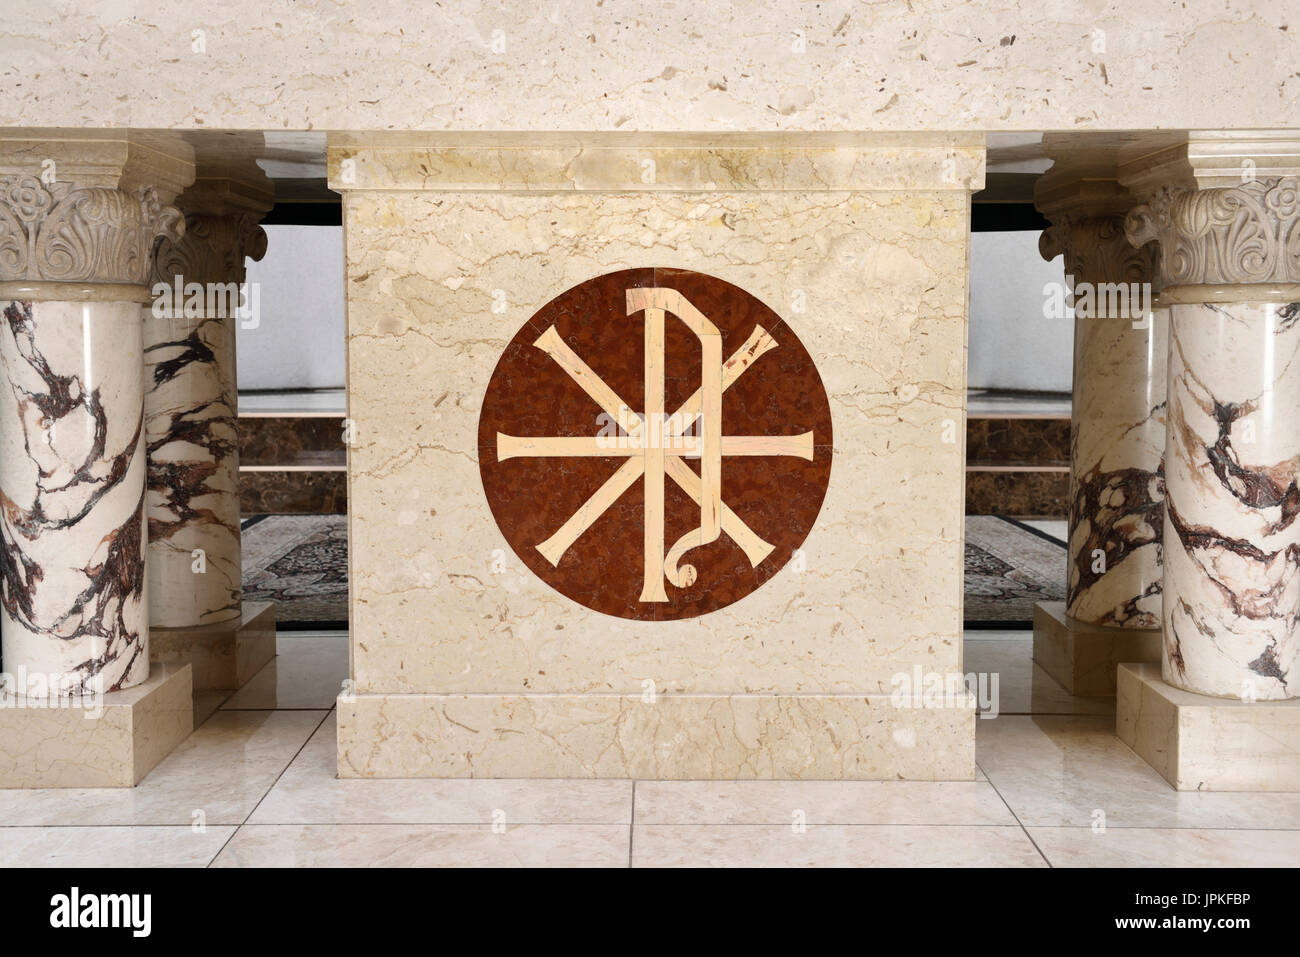 Chi rho stock photos chi rho stock images alamy christian chi rho symbol for first two greek letters of christ inlaid on the marble altar biocorpaavc Image collections